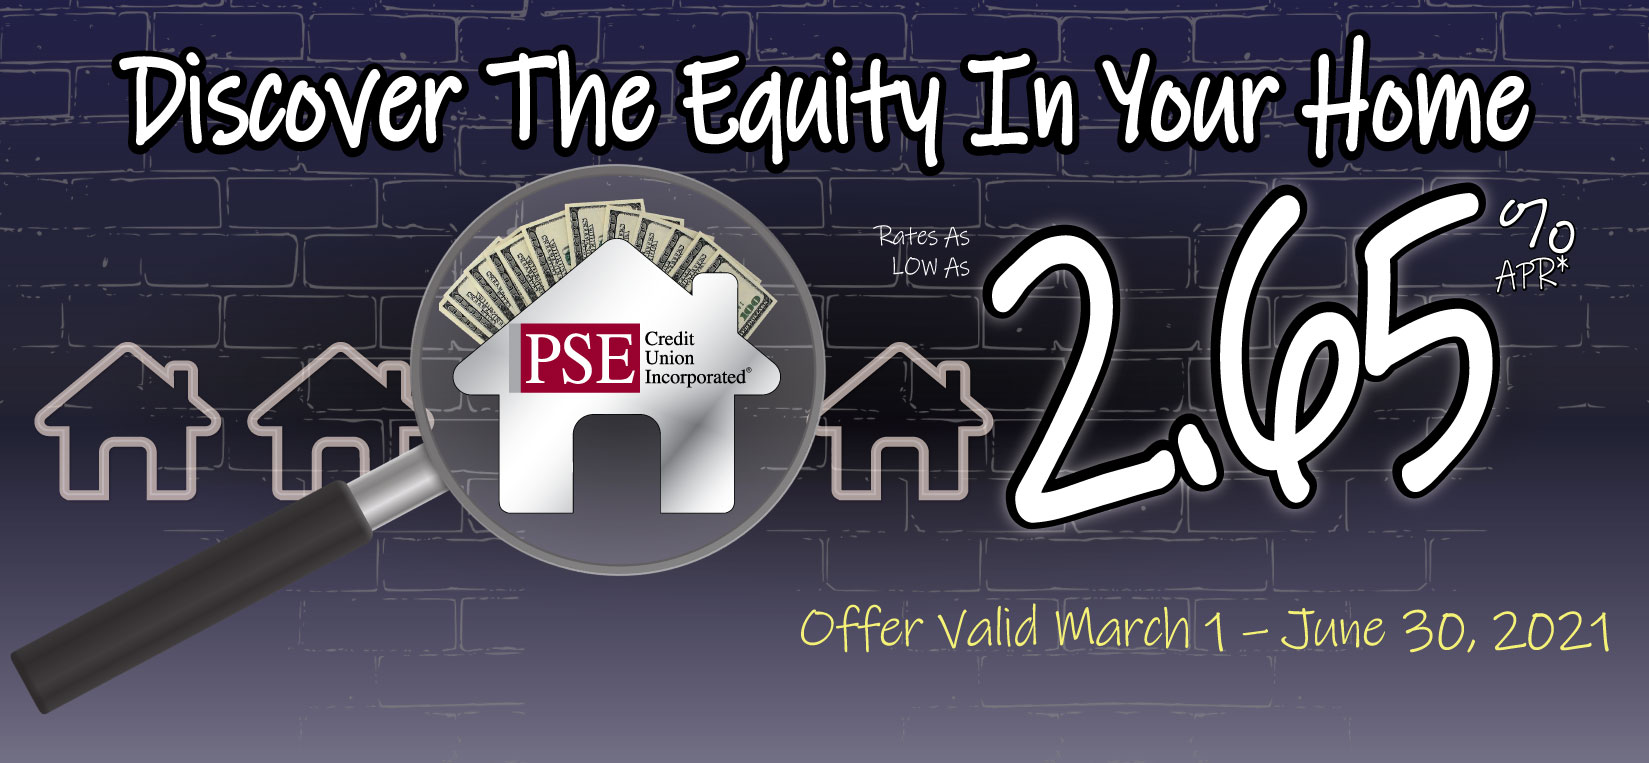 Discover The Equity in Your Home Banner Image